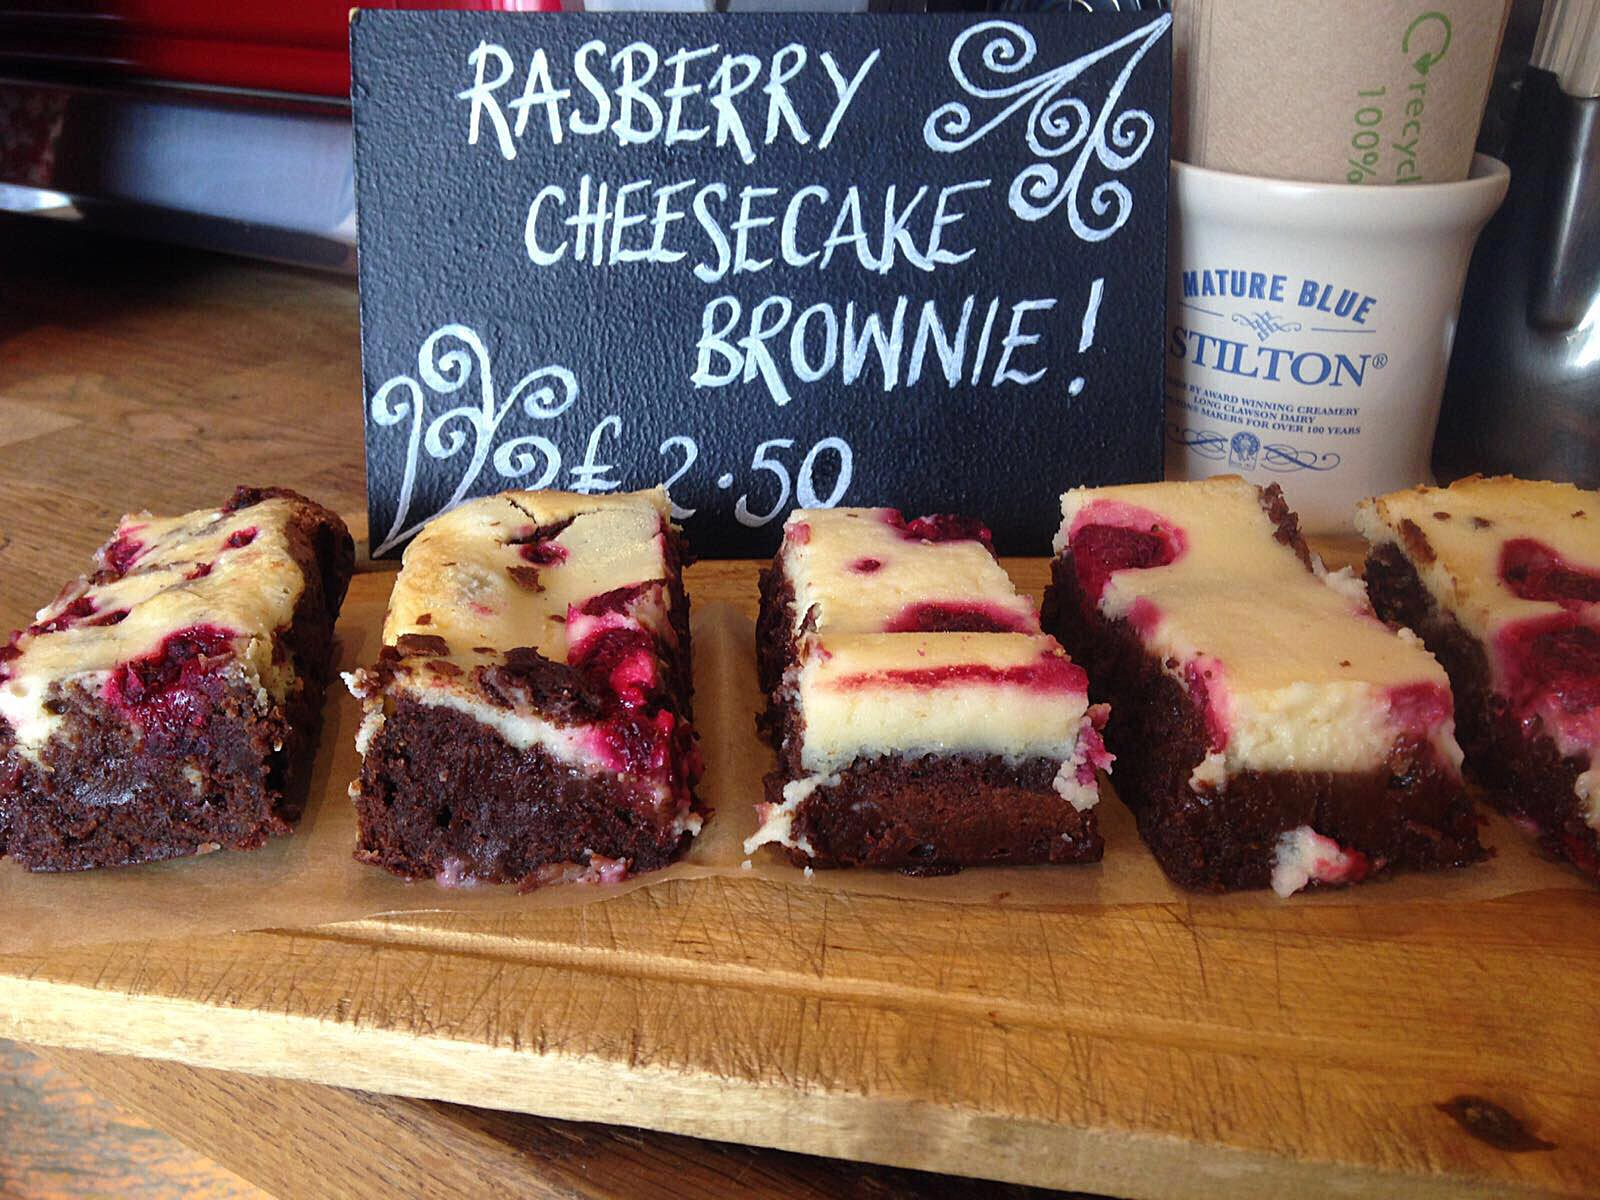 Raspberry cheesecake brownie